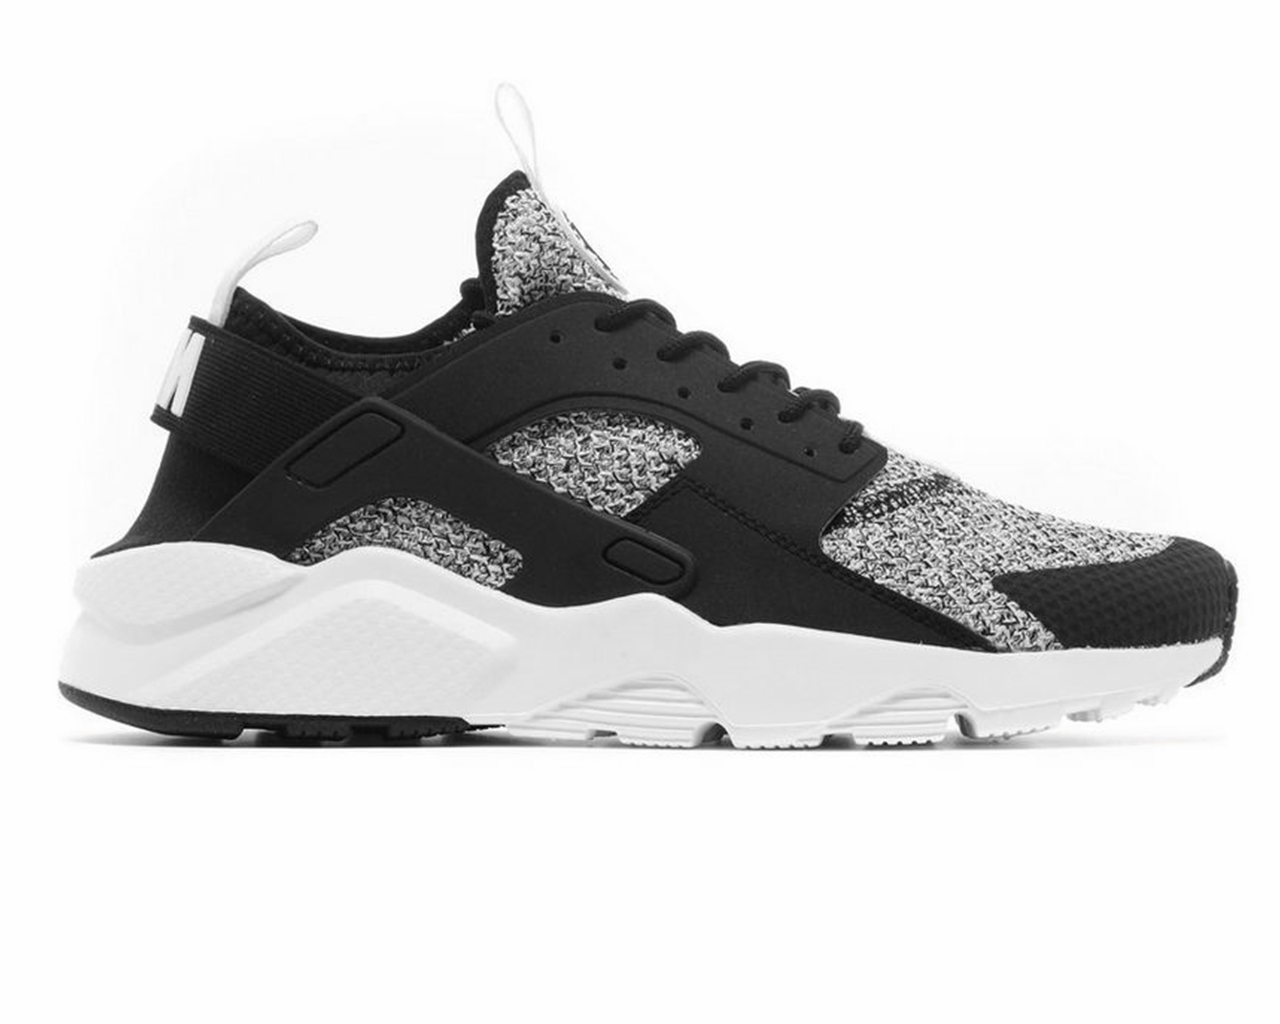 innovative design ae374 a2b06 SNEAKERS NIKE AIR HUARACHE 875841-010 RUN ULTRA SE BLACK WHITE-WHITE - Sery  Sport